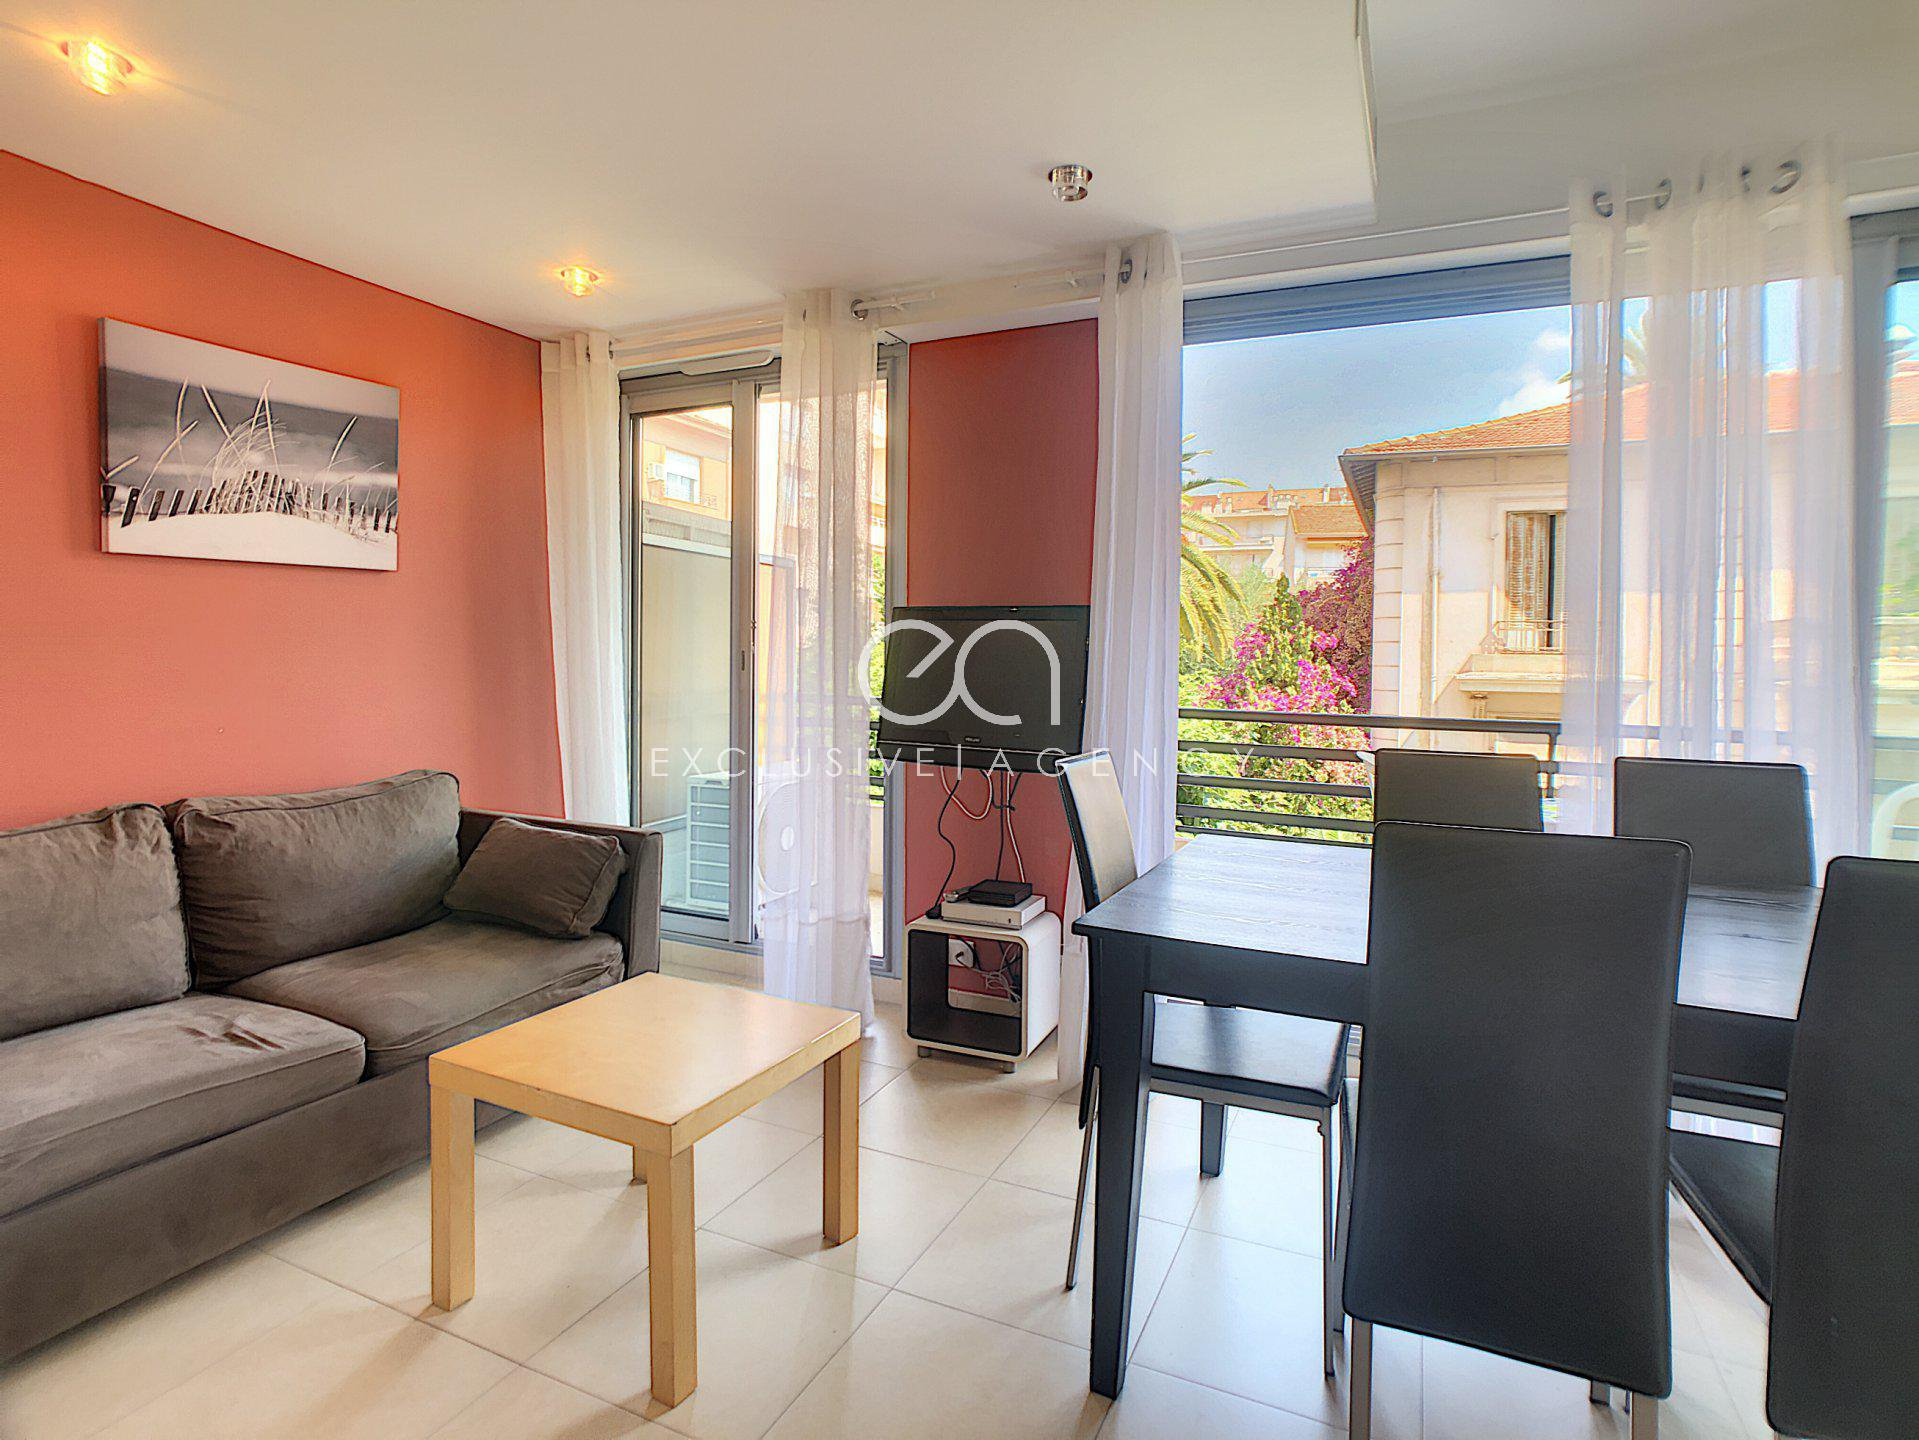 For sale in Cannes Center  32sqm studio with terrace